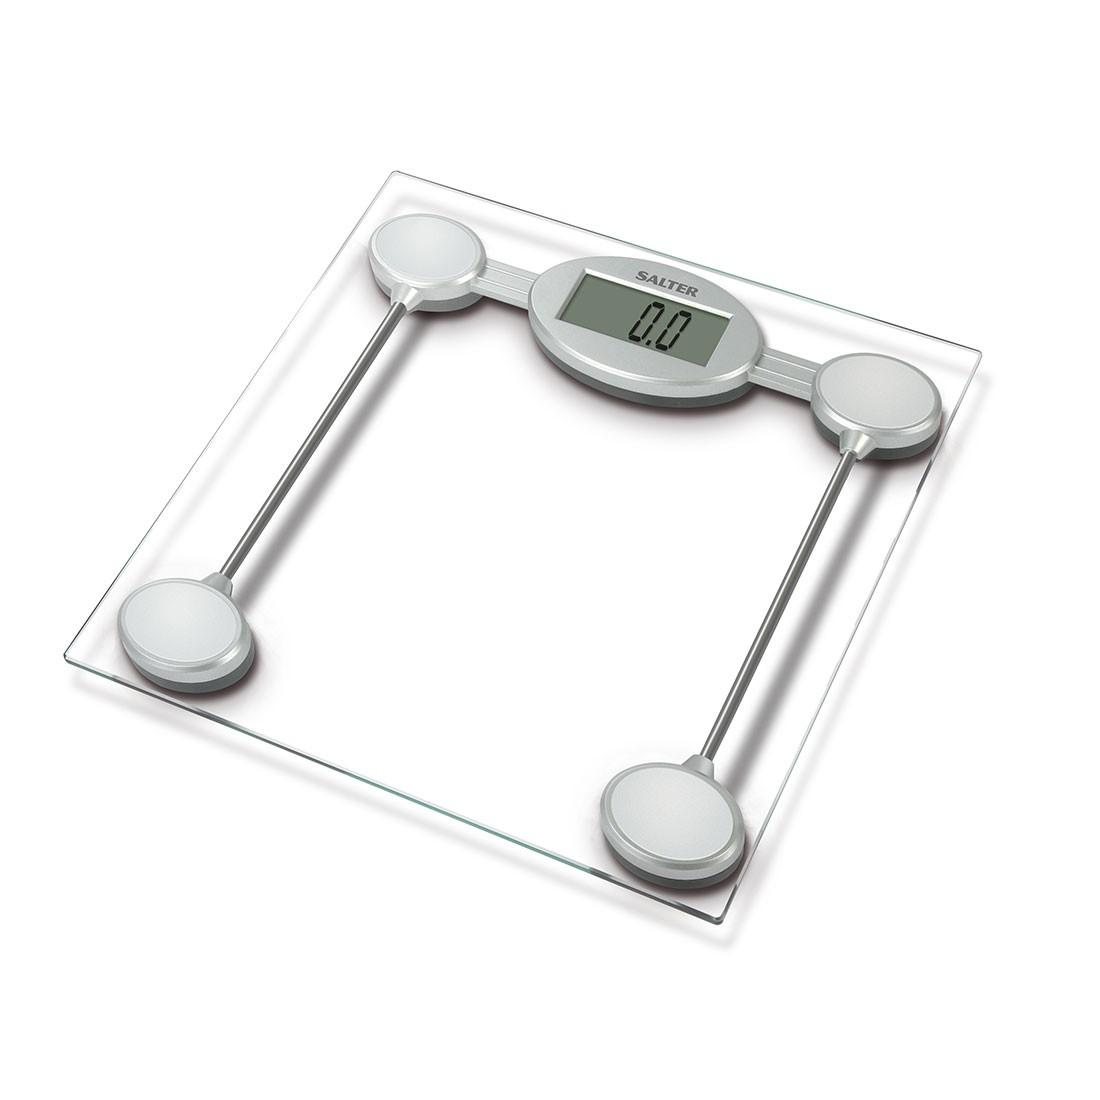 Salter Digital Bathroom Scales Electronic Body Weighing Metric Kg Imperial Lb Toughened